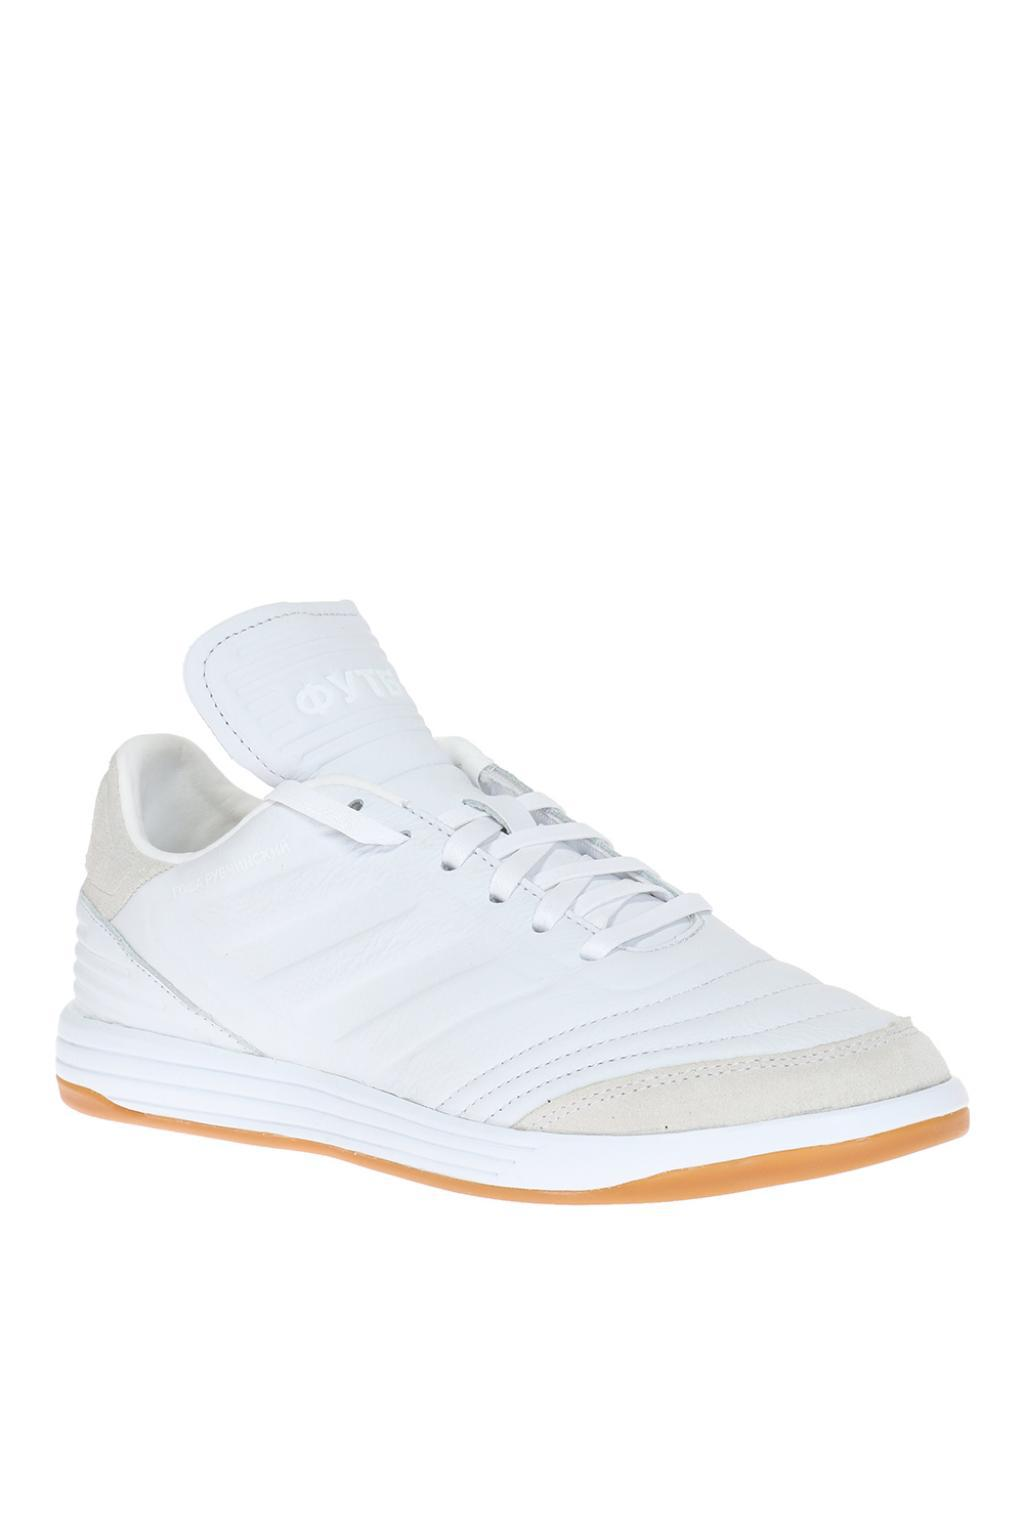 0fac86da050 Lyst - Gosha Rubchinskiy X Adidas in White for Men